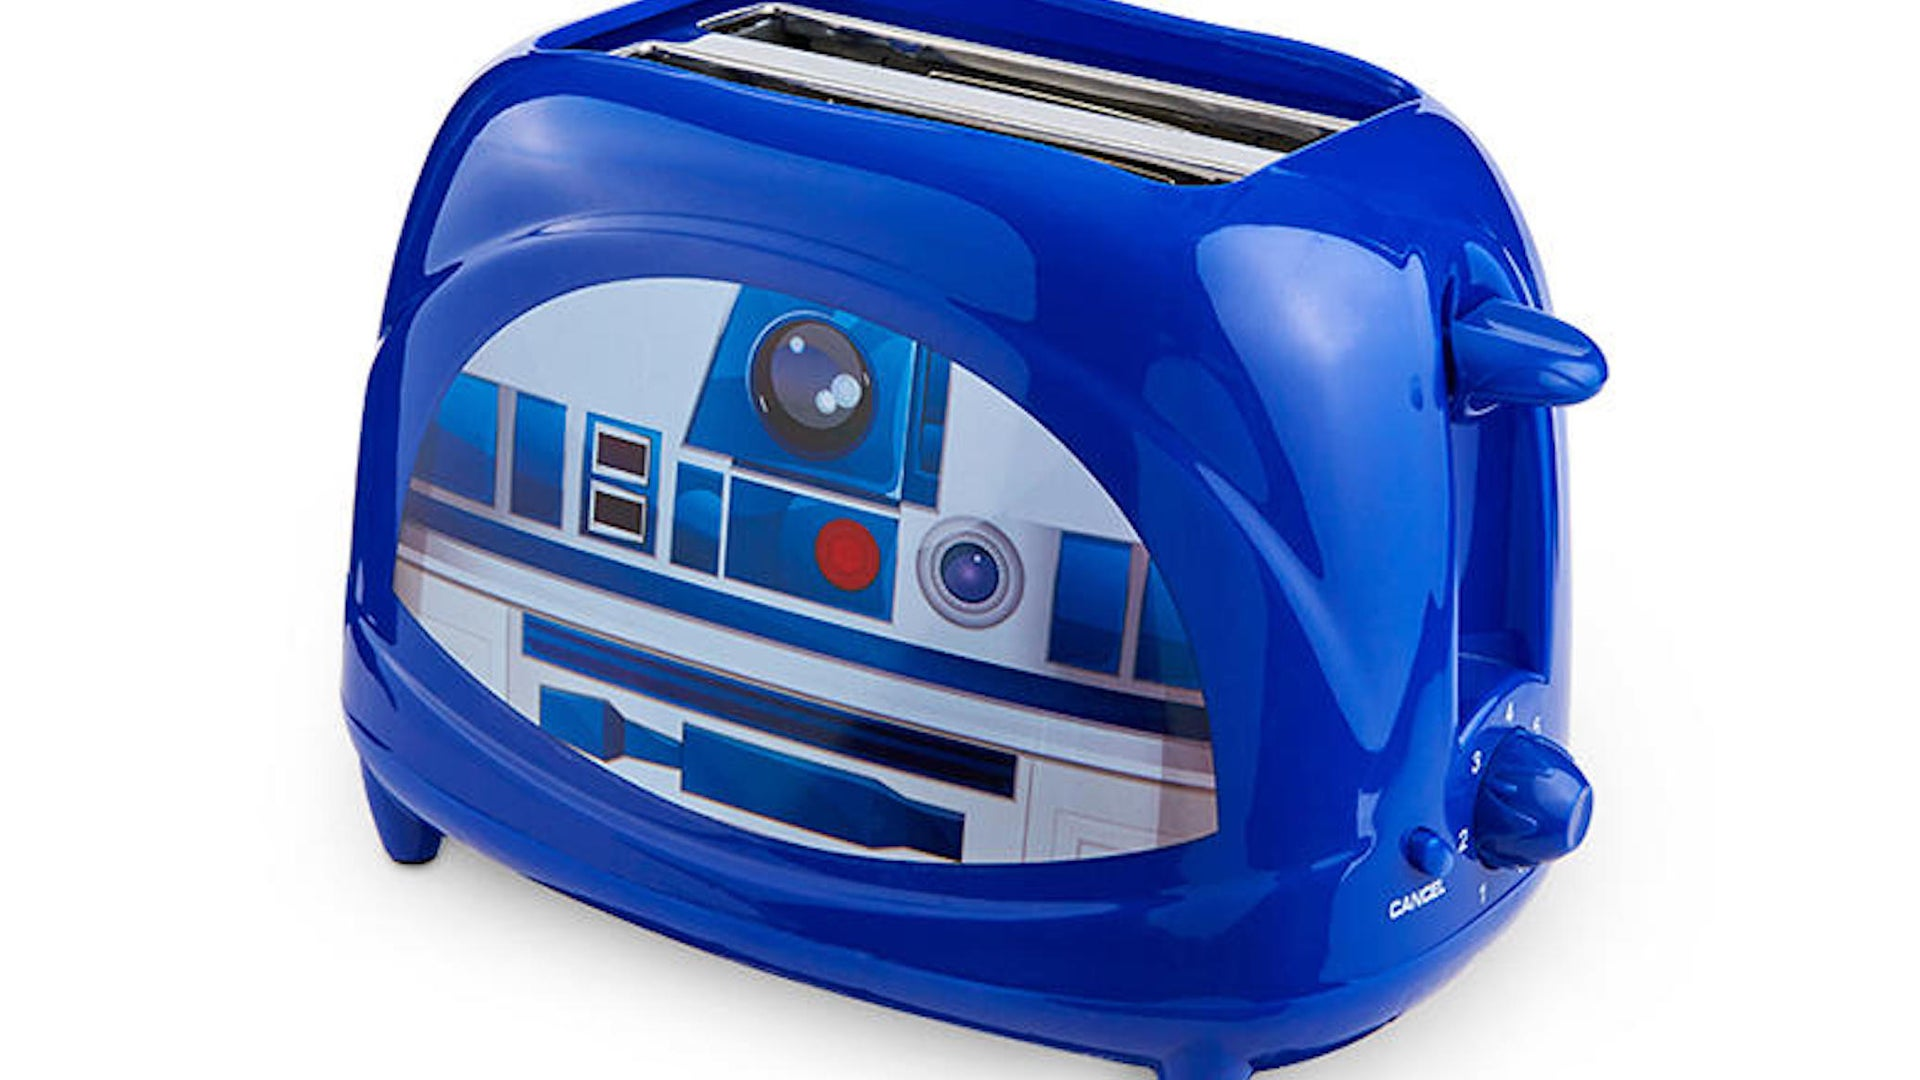 R2-D2 toaster